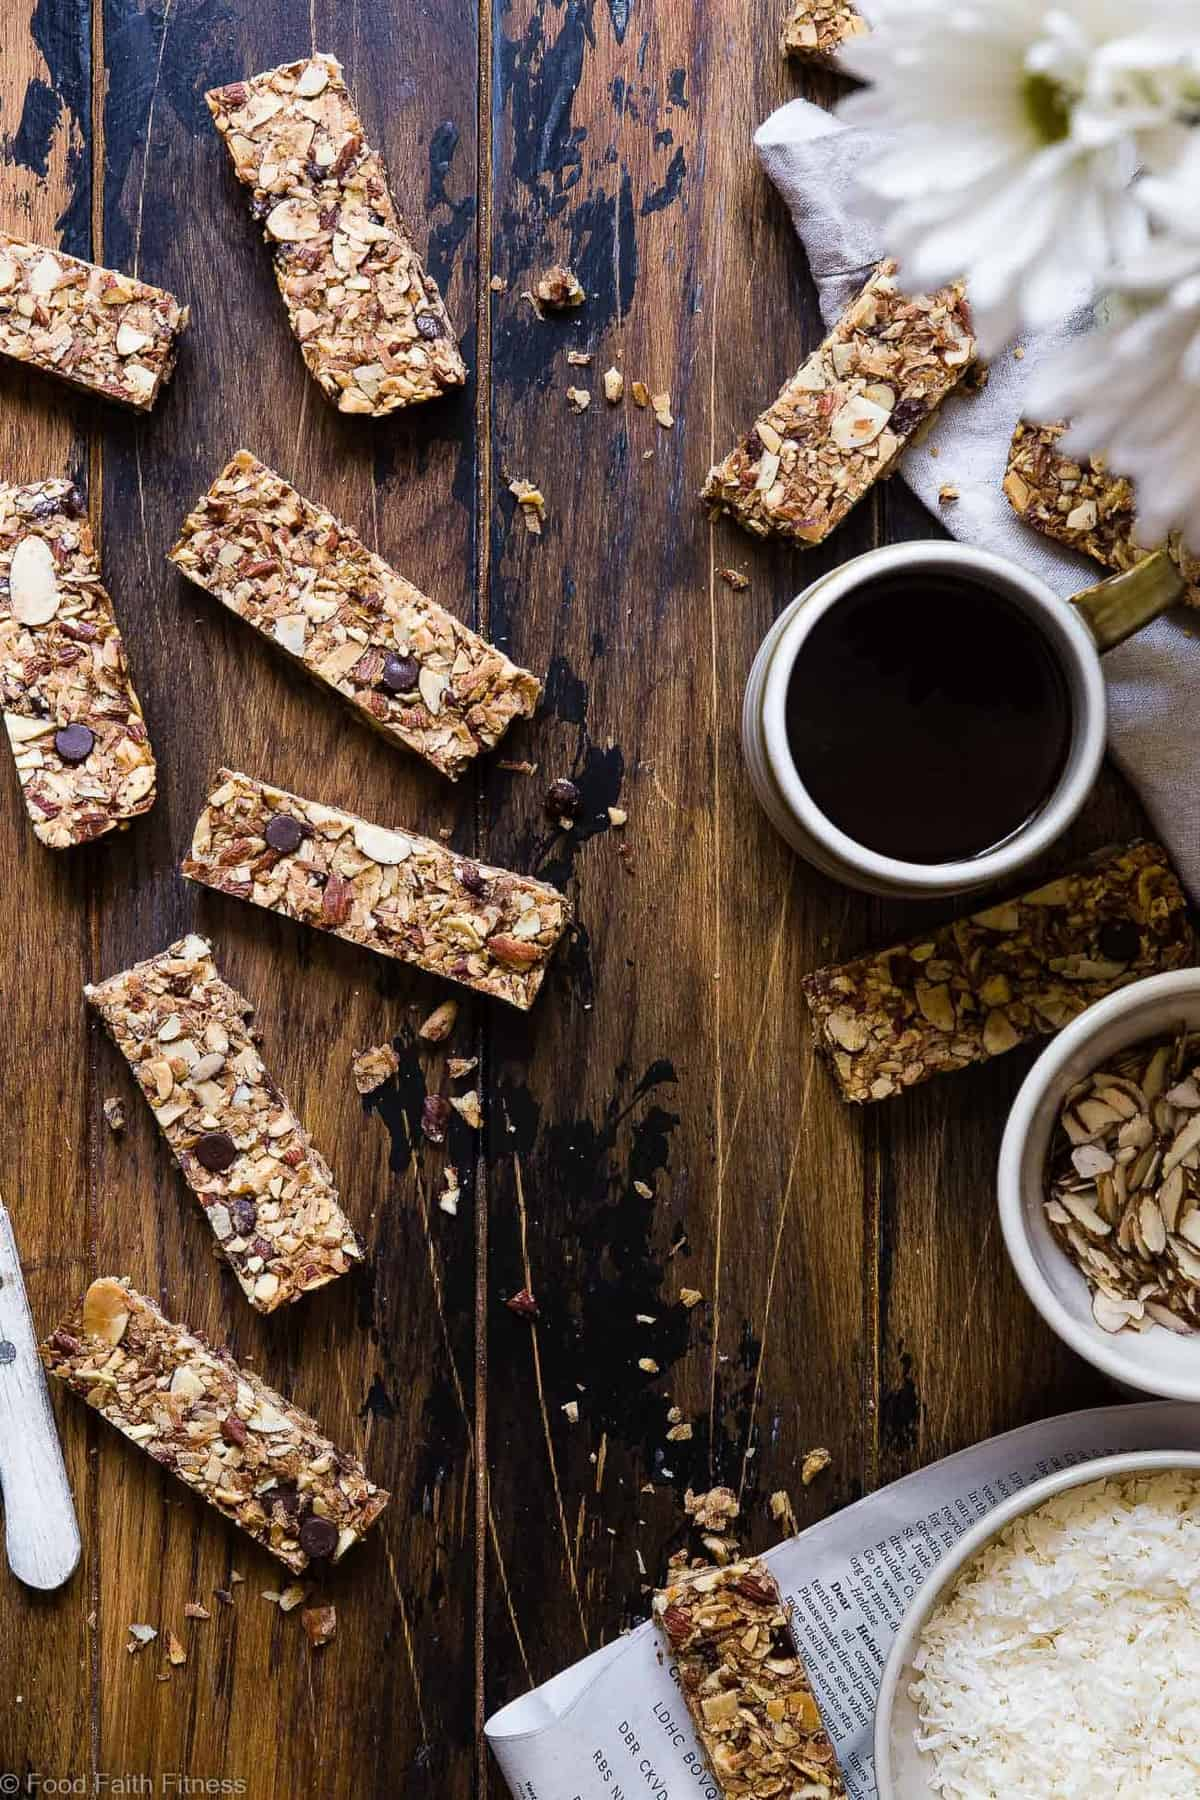 Sugar Free Keto Low Carb Granola Bars Recipe - This low carb granola bars recipe is only 7 simple ingredients and tastes like an Almond Joy! Kids or adults will LOVE these healthy granola bars and they're portable and freeze great too! | #Foodfaithfitness | #Keto #Glutenfree #Paleo #Dairyfree #Sugarfree